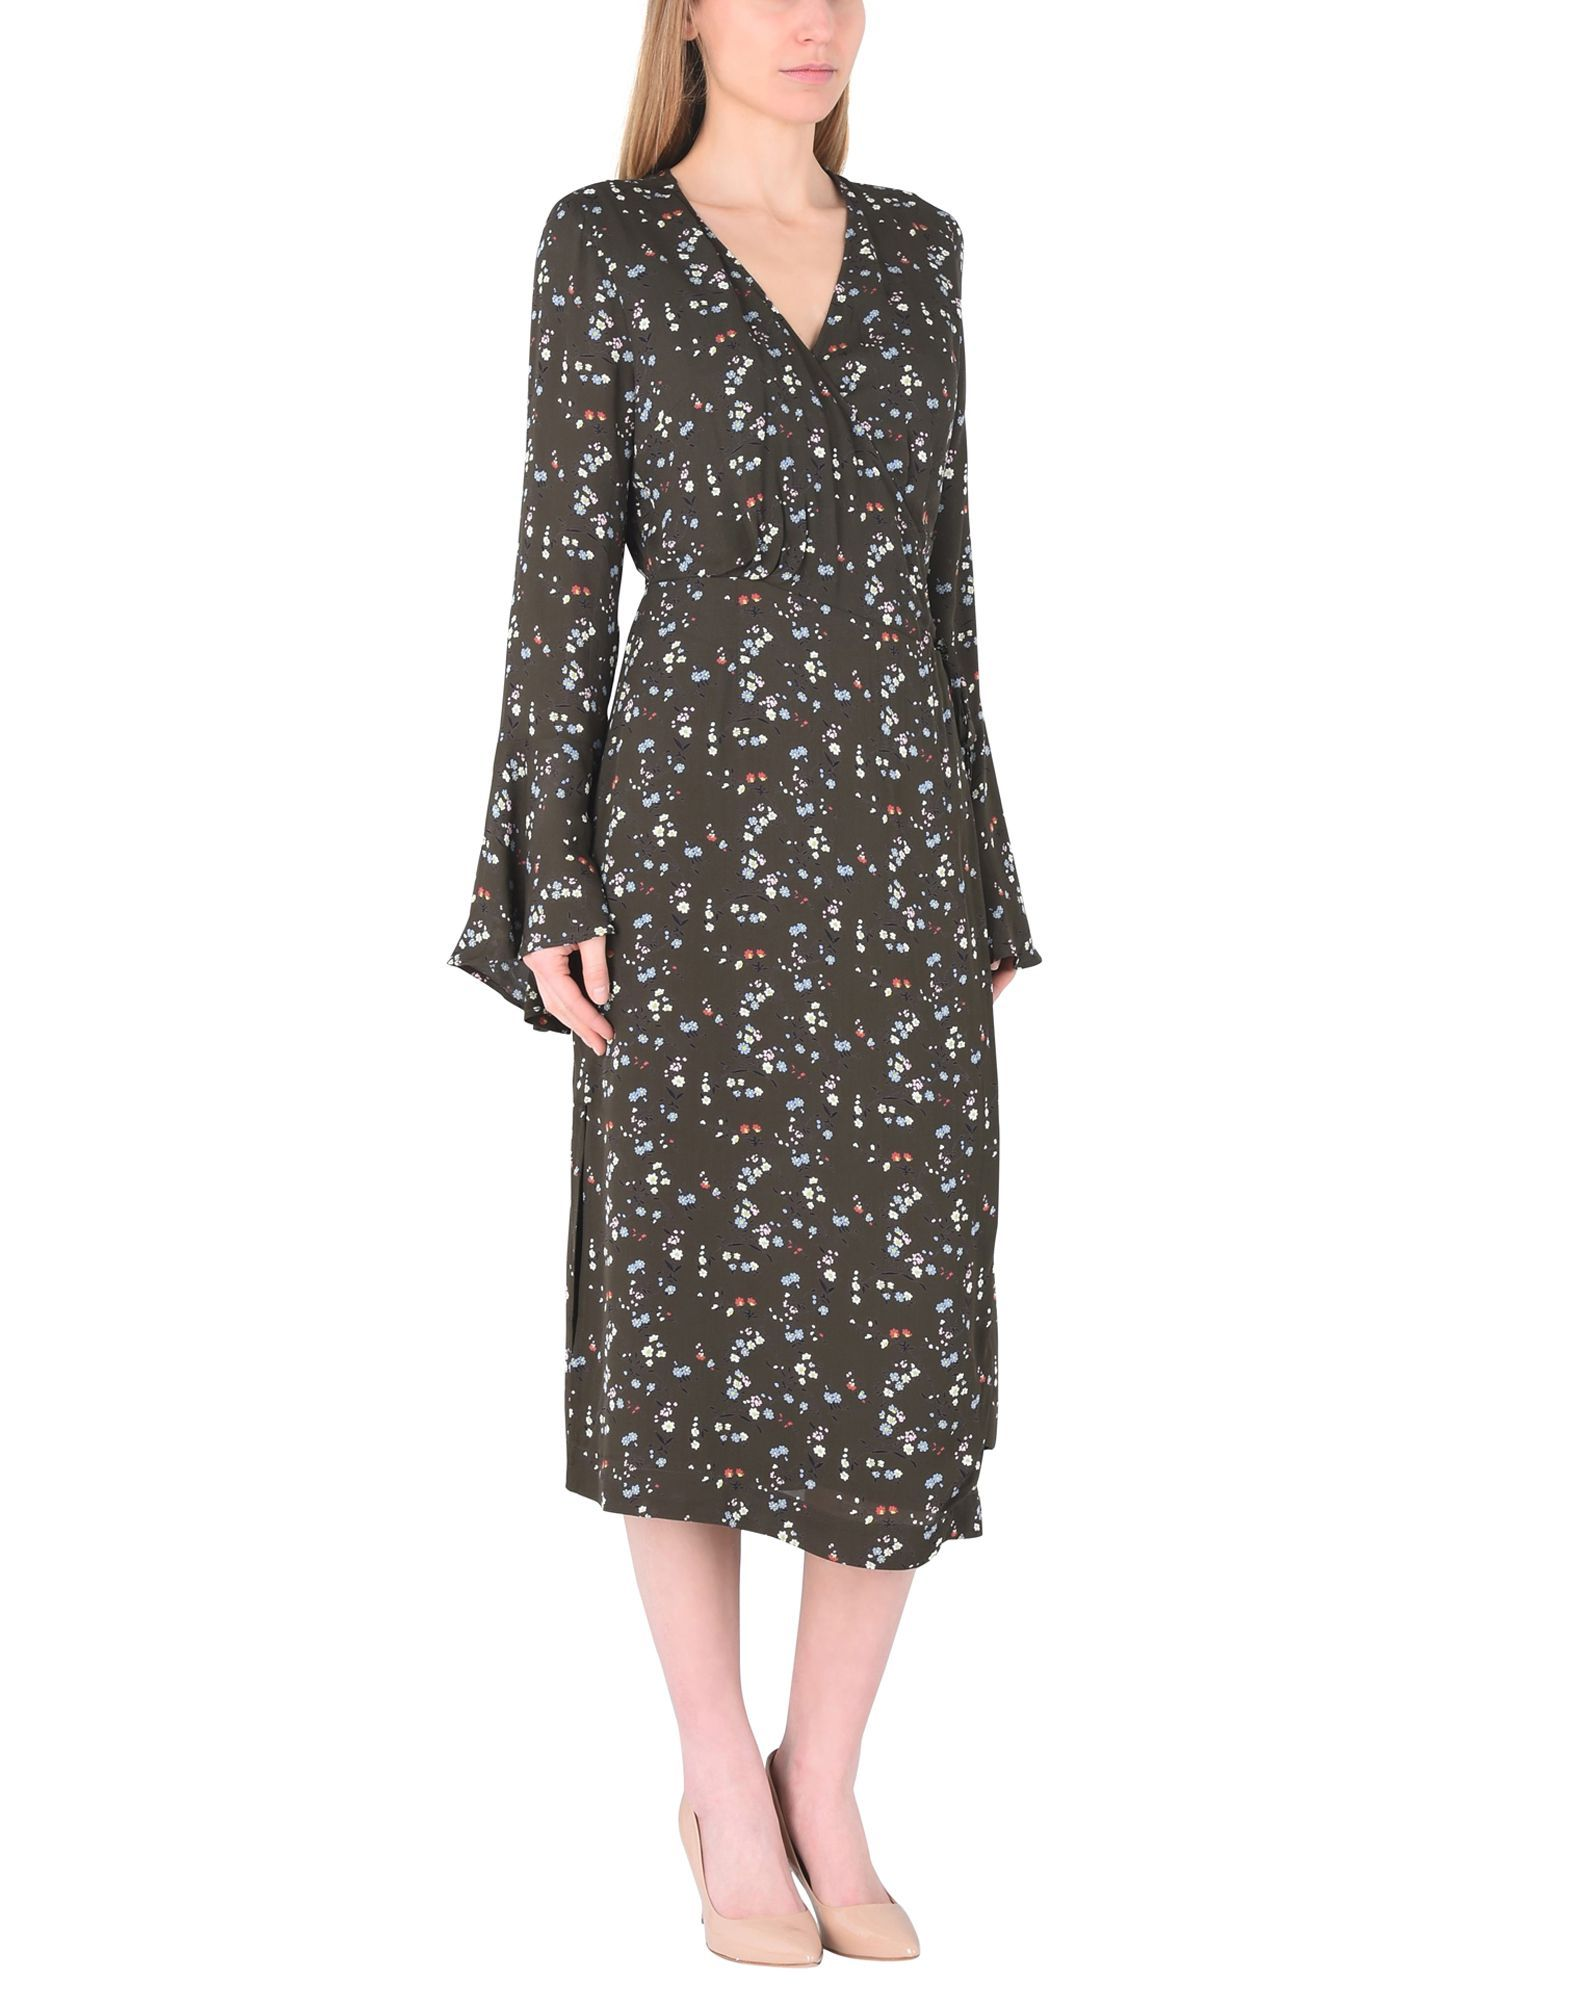 Essentiel Antwerp Military Green Print Long Sleeve Dress